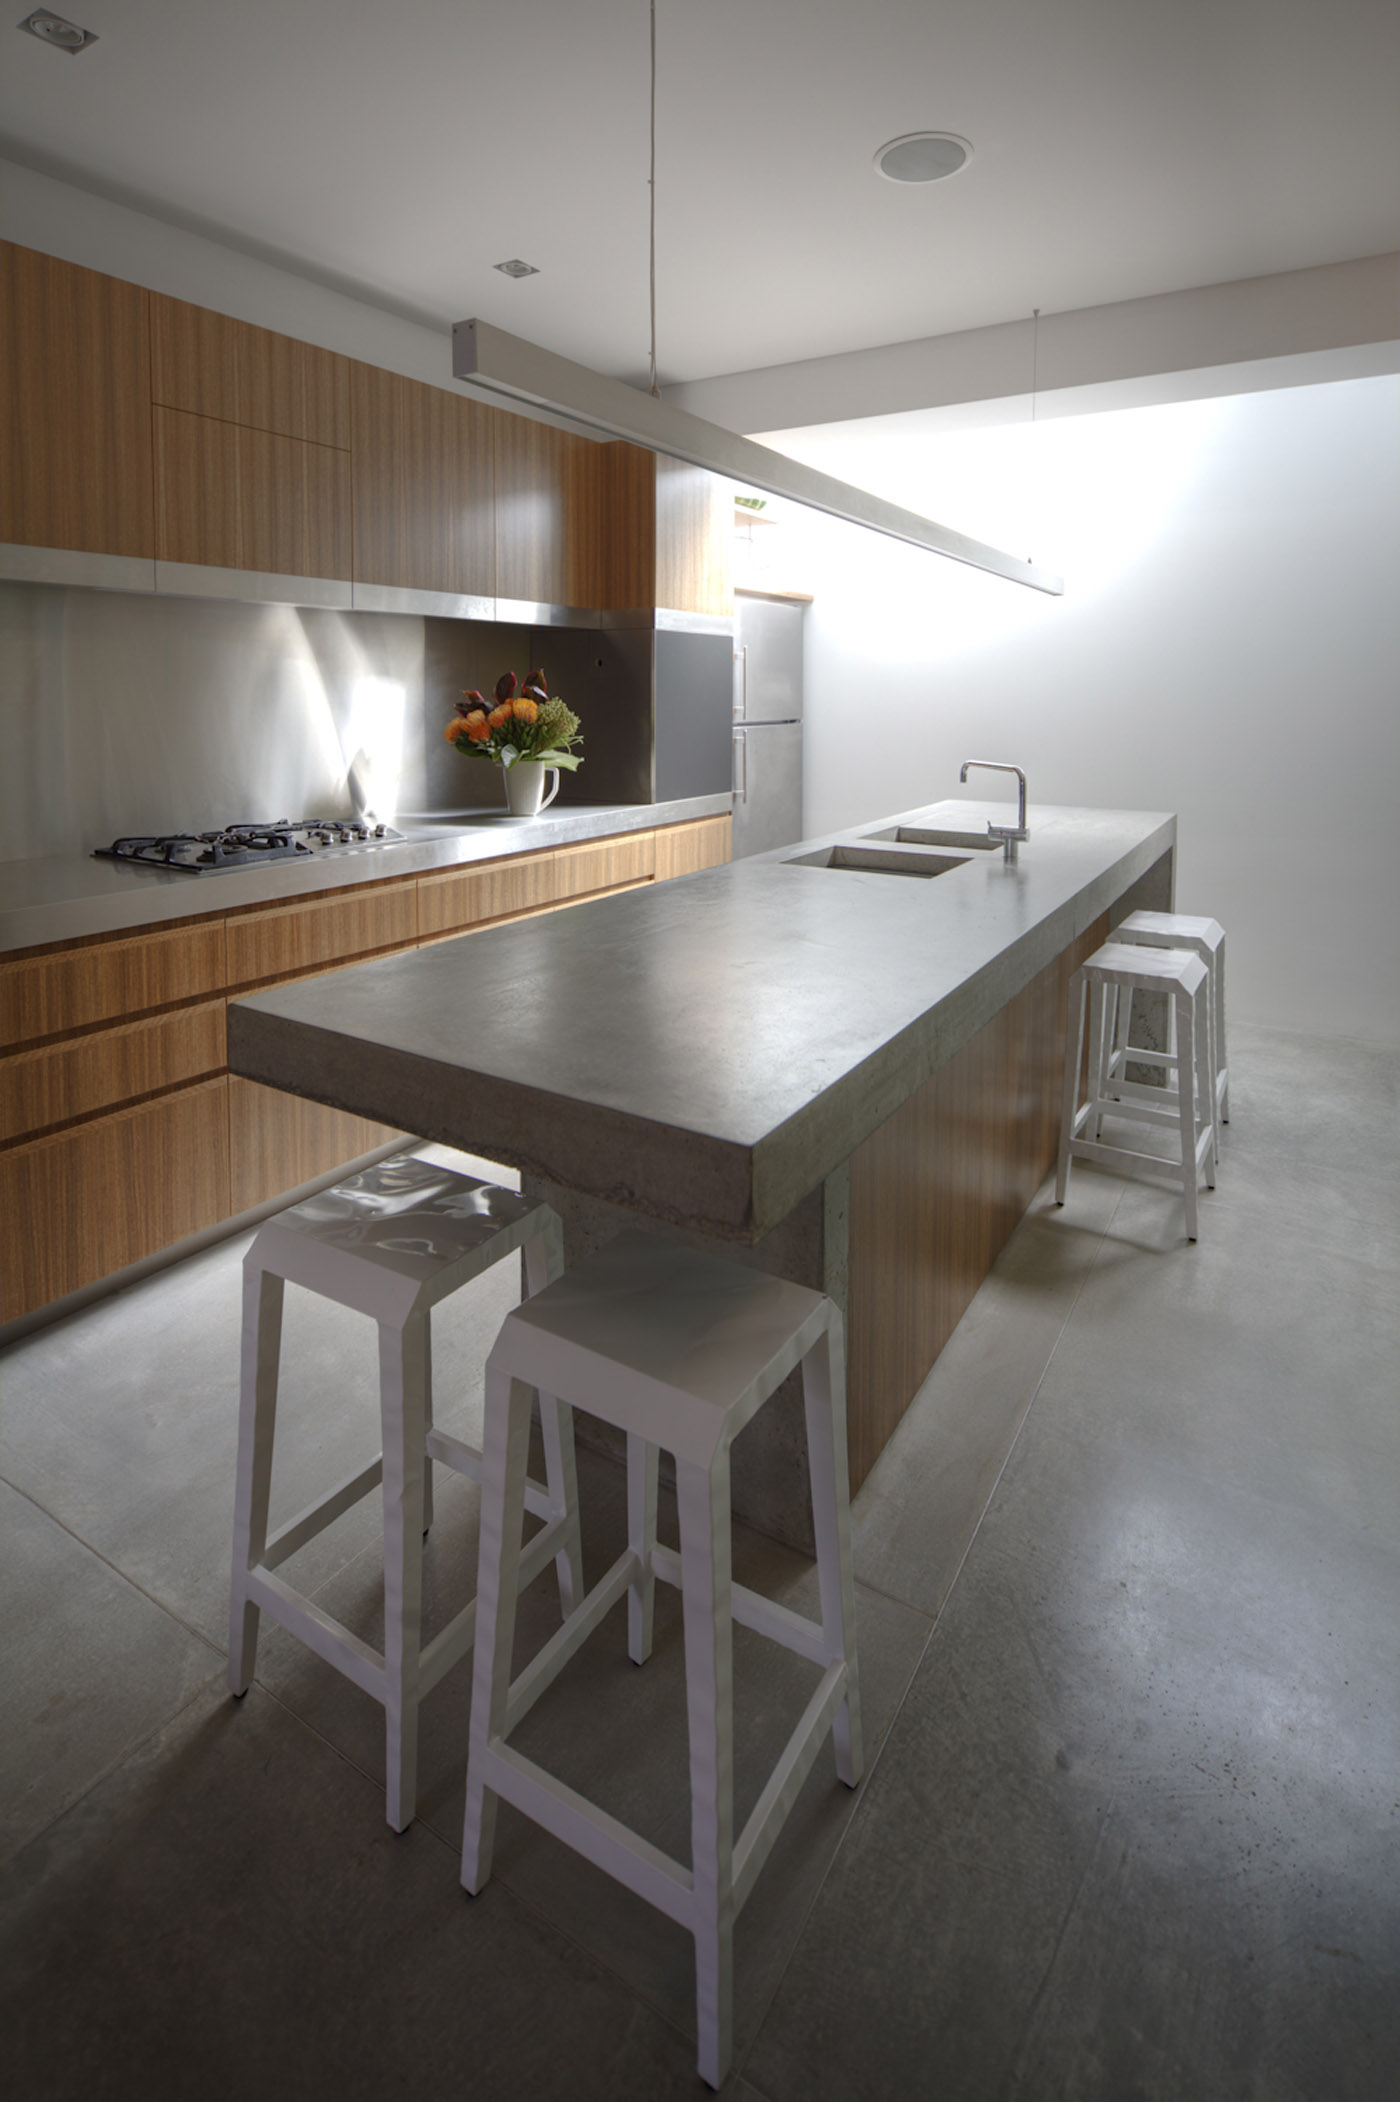 Newtown Terrace by award winning Sydney firm Sam Crawford Architects. Minimal concrete, stainless steel and timber kitchen